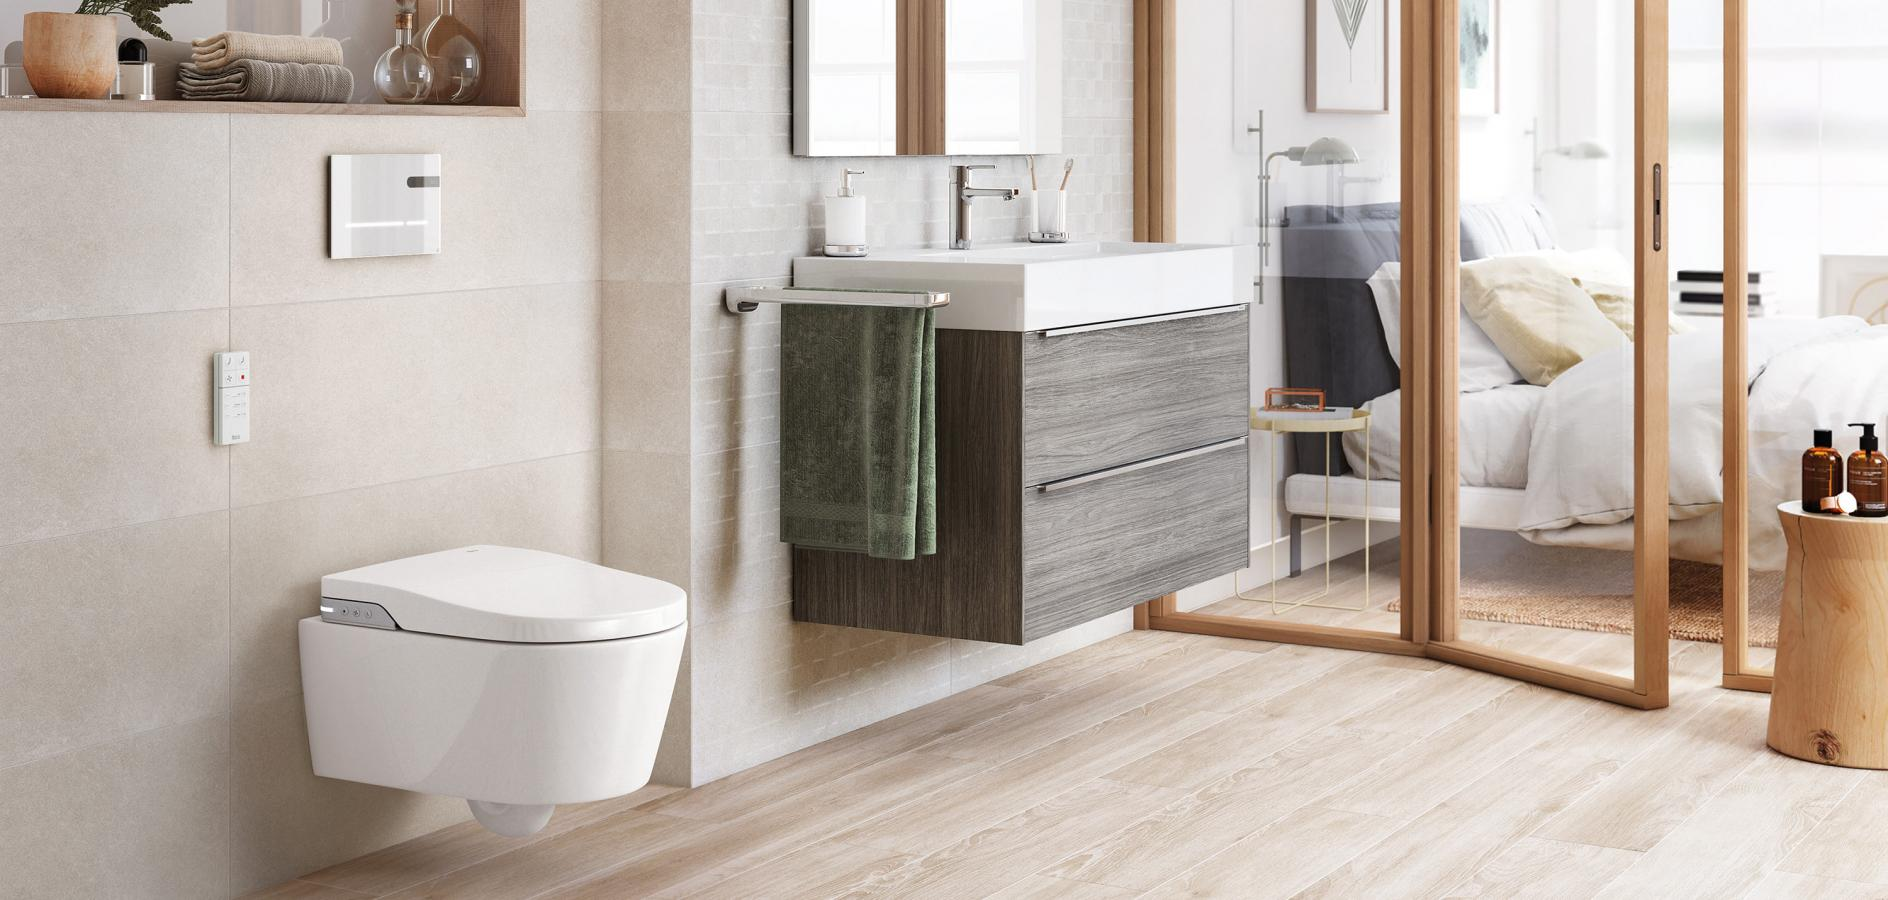 A Home from the Future: How to Technologically Upgrade Your Bathroom